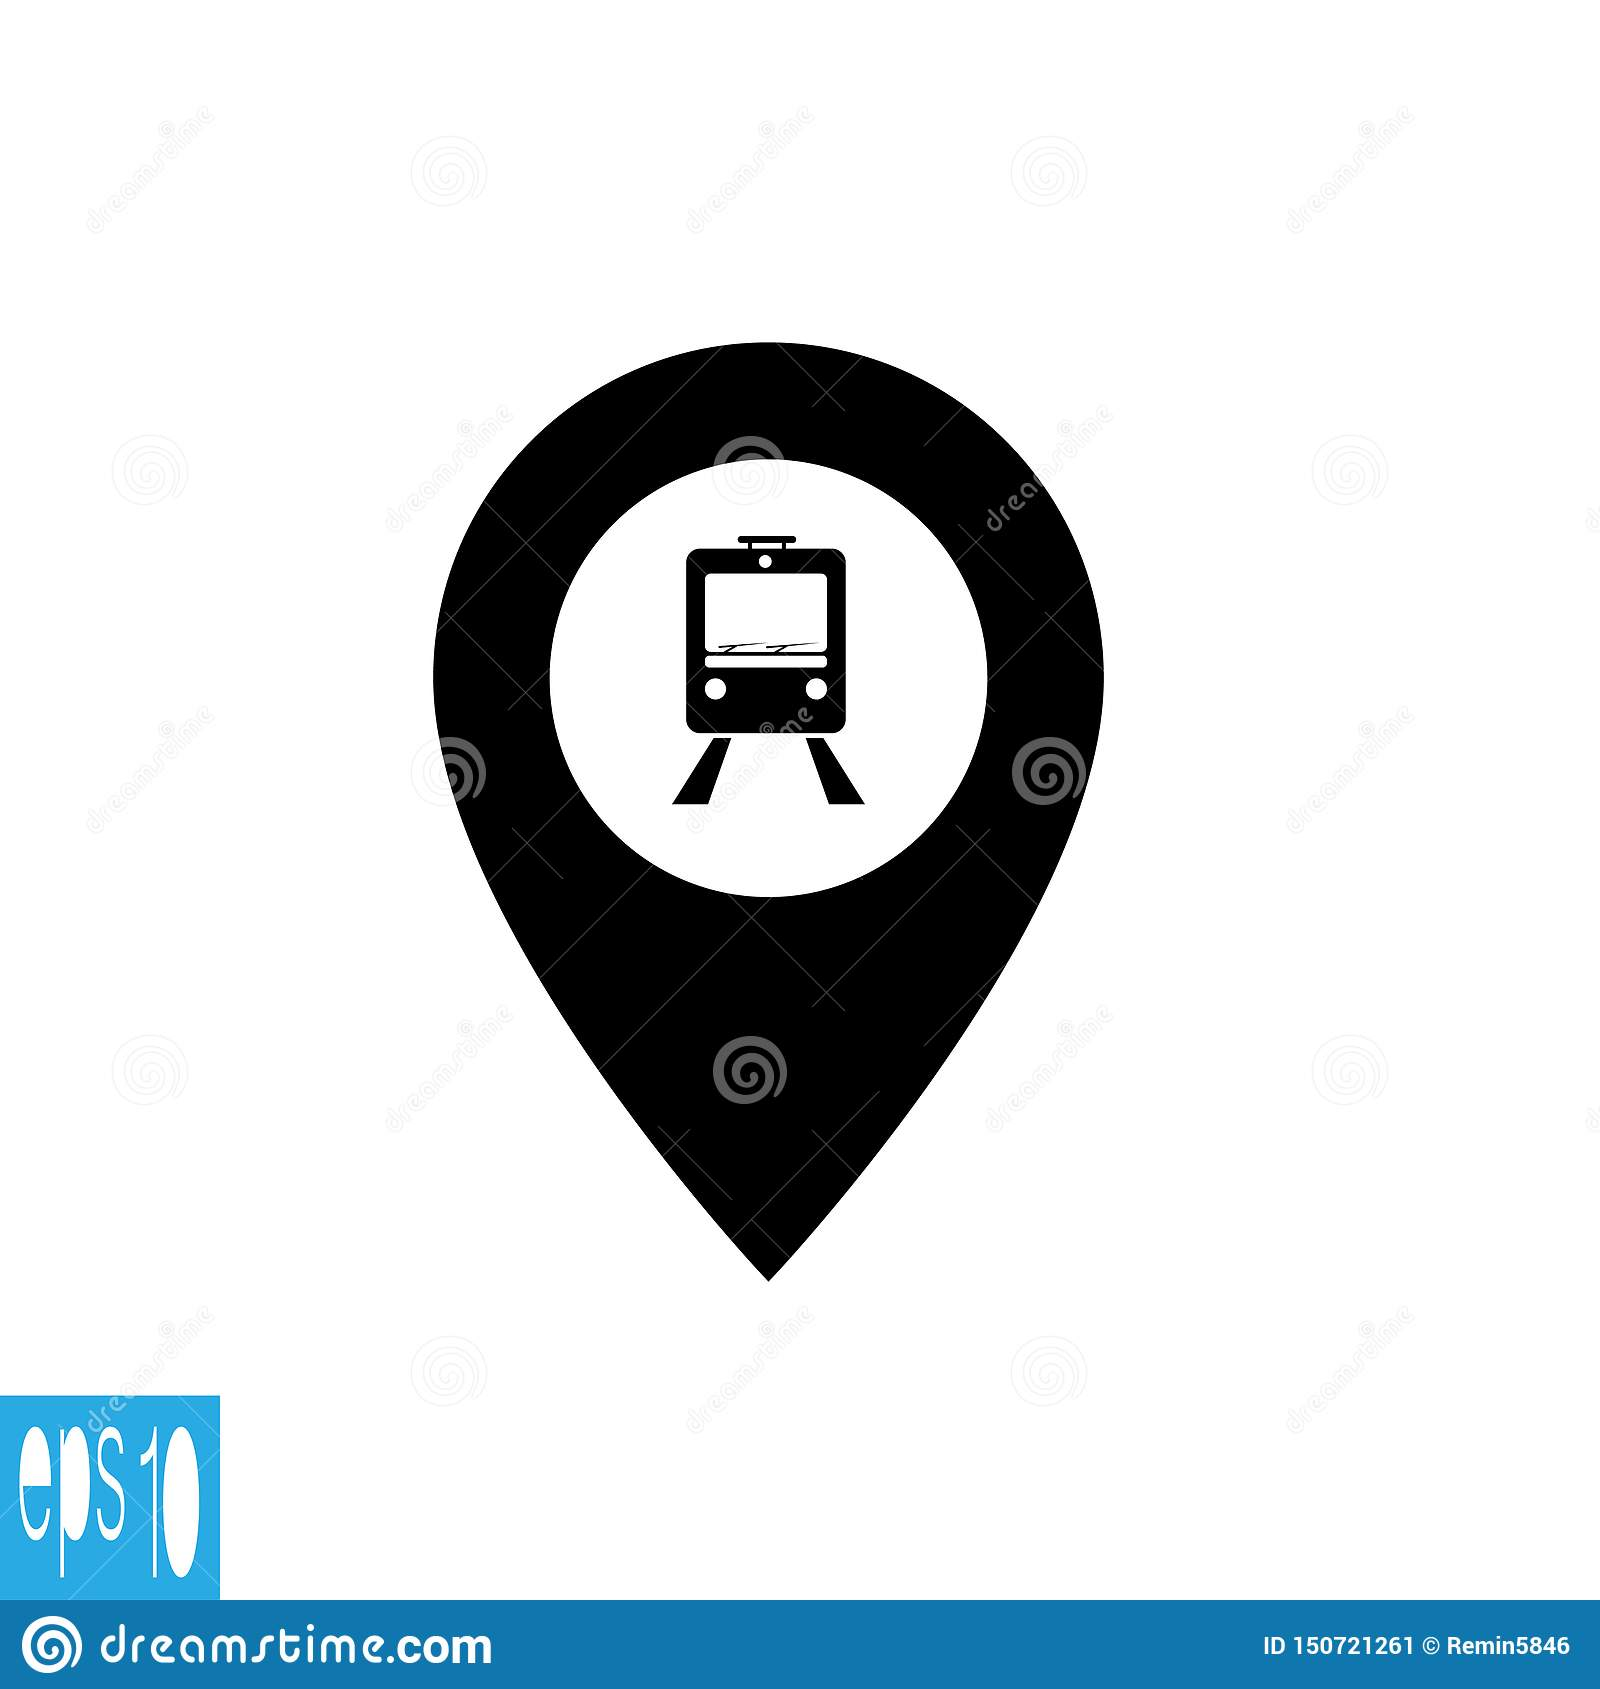 Map icon with train, trolley - vector illustration